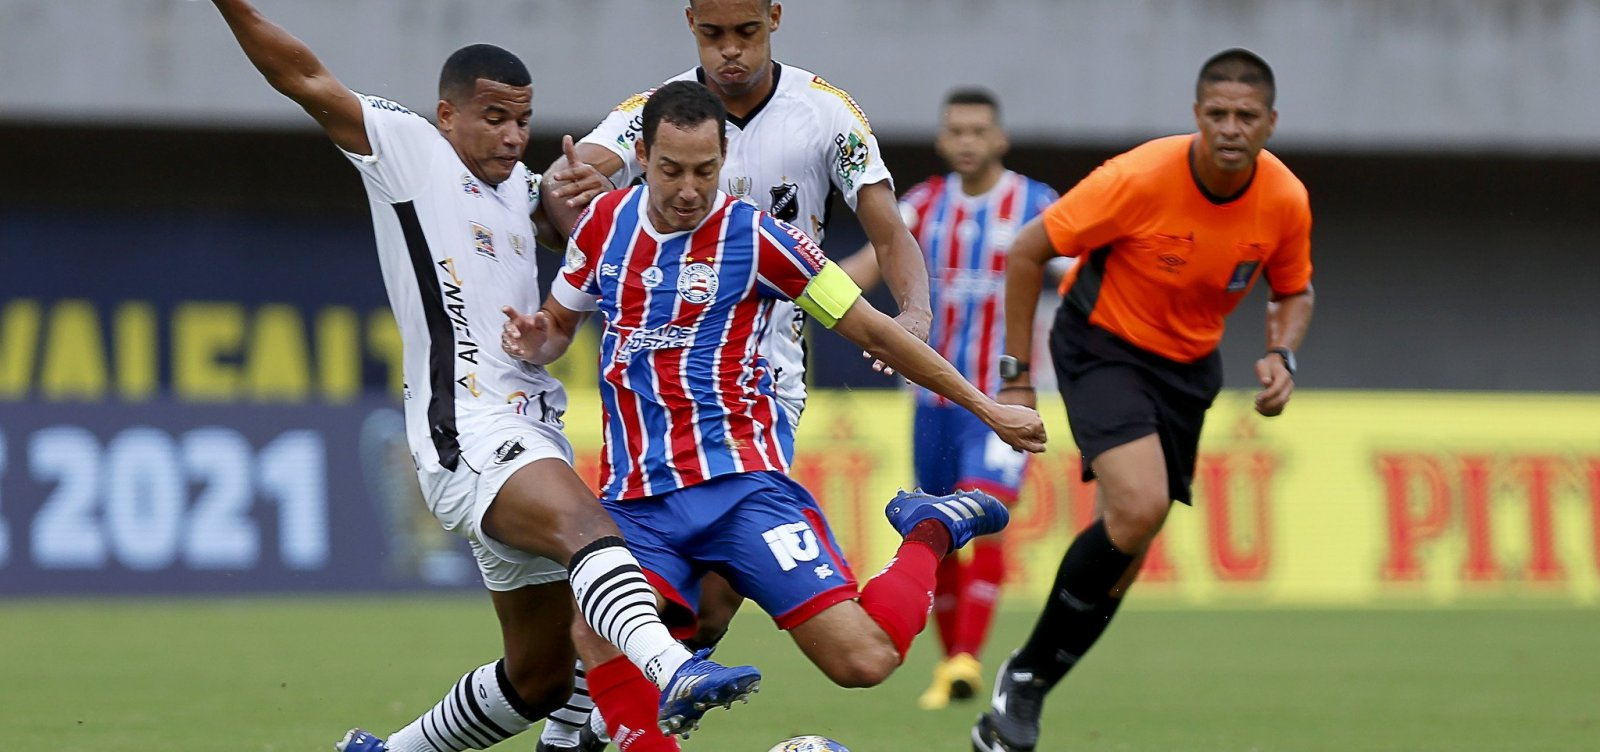 De virada, Bahia vence ABC por 2 a 1 e se classifica na Copa do Nordeste